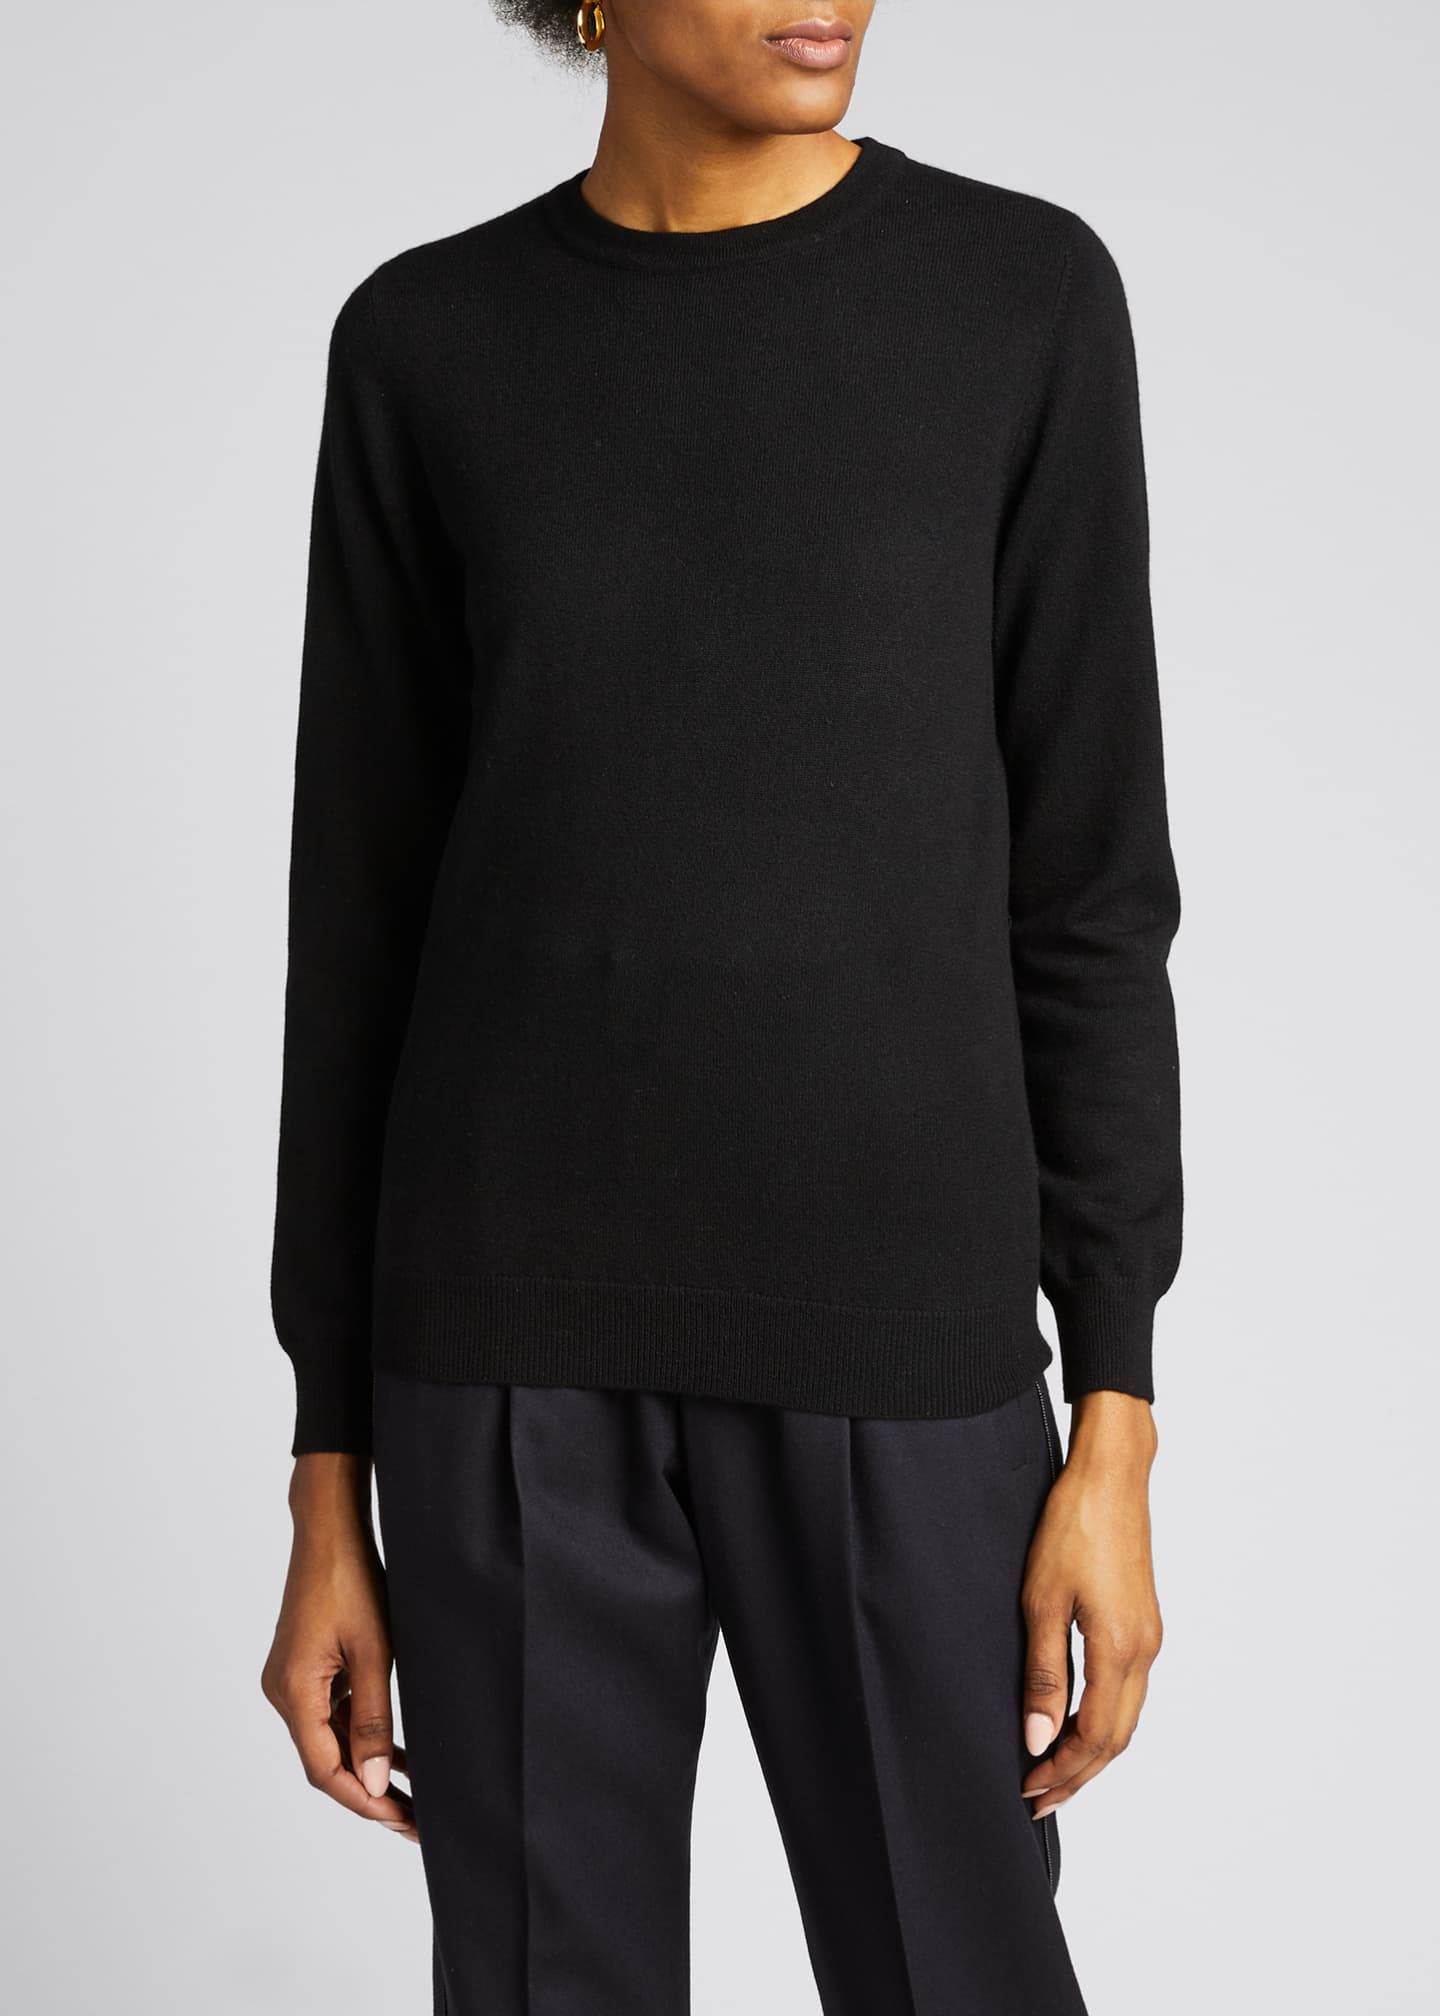 Image 3 of 5: Cashmere Basic Crewneck Sweater